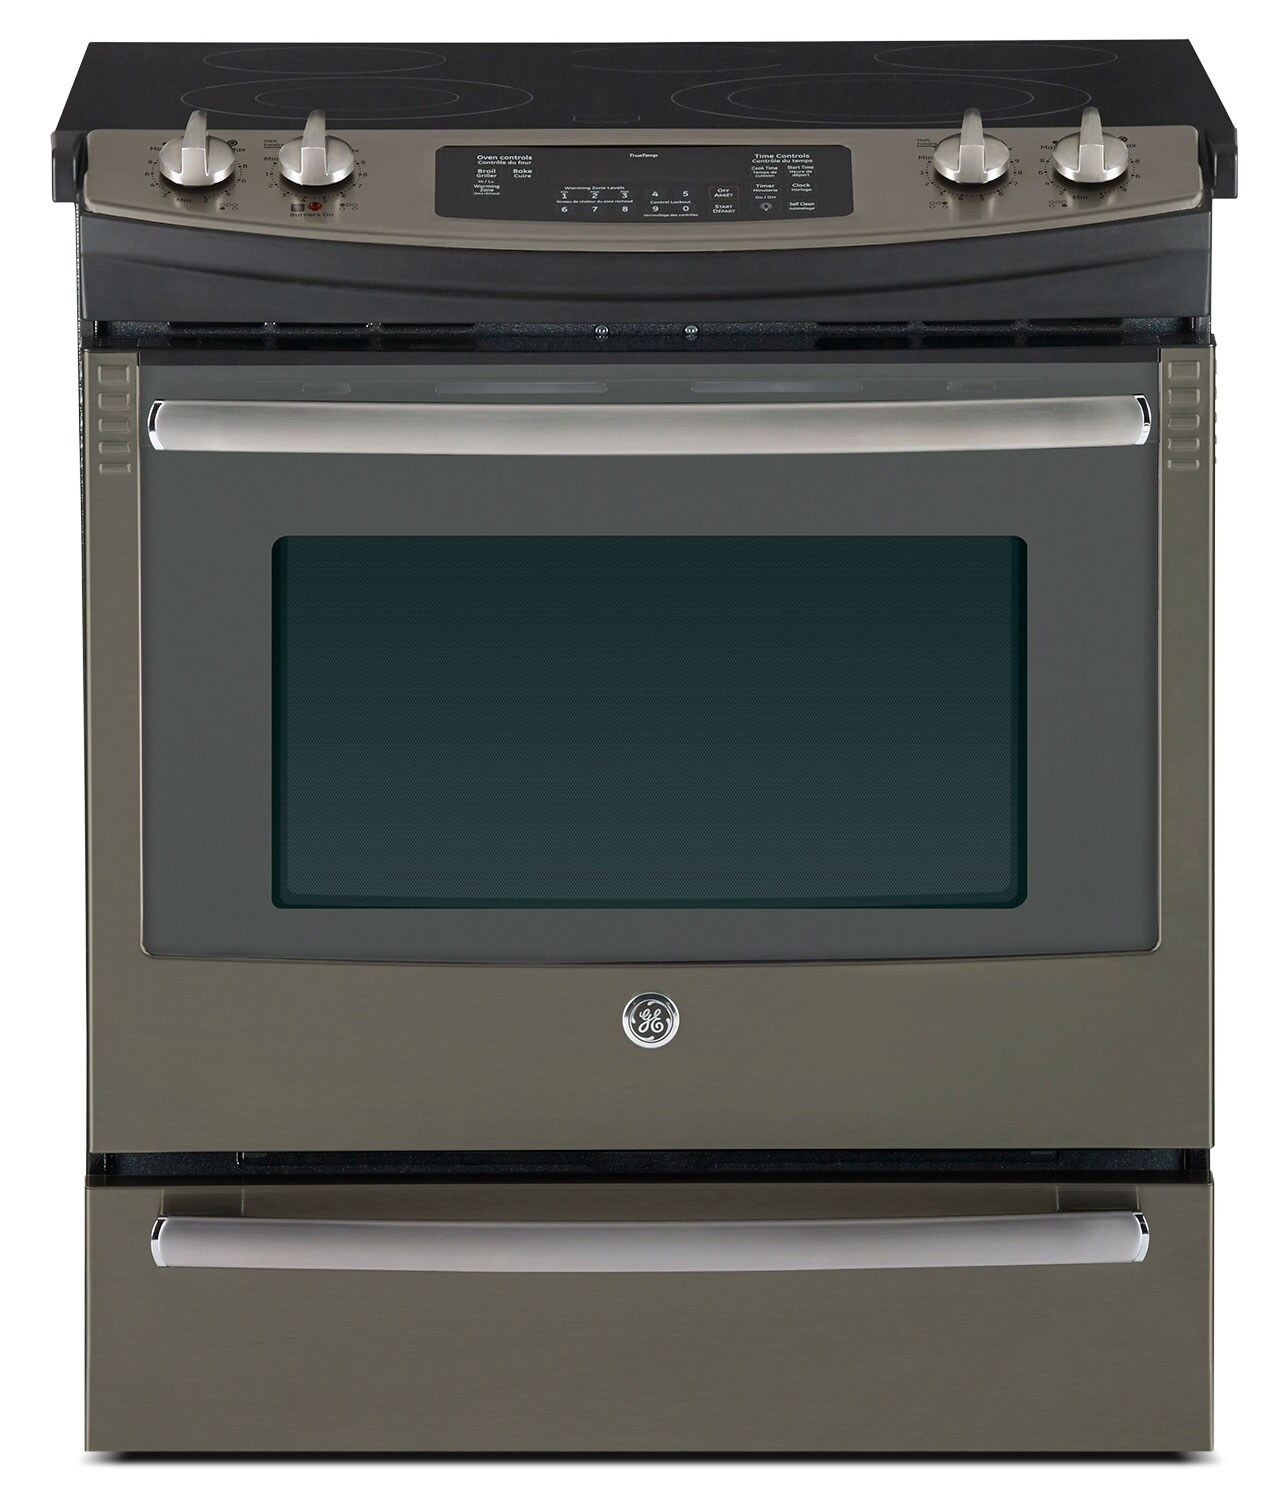 Cooking Products - GE Stainless Steel Slide-In Electric Convection Range (5.2 Cu. Ft.) - JCS860SFSS